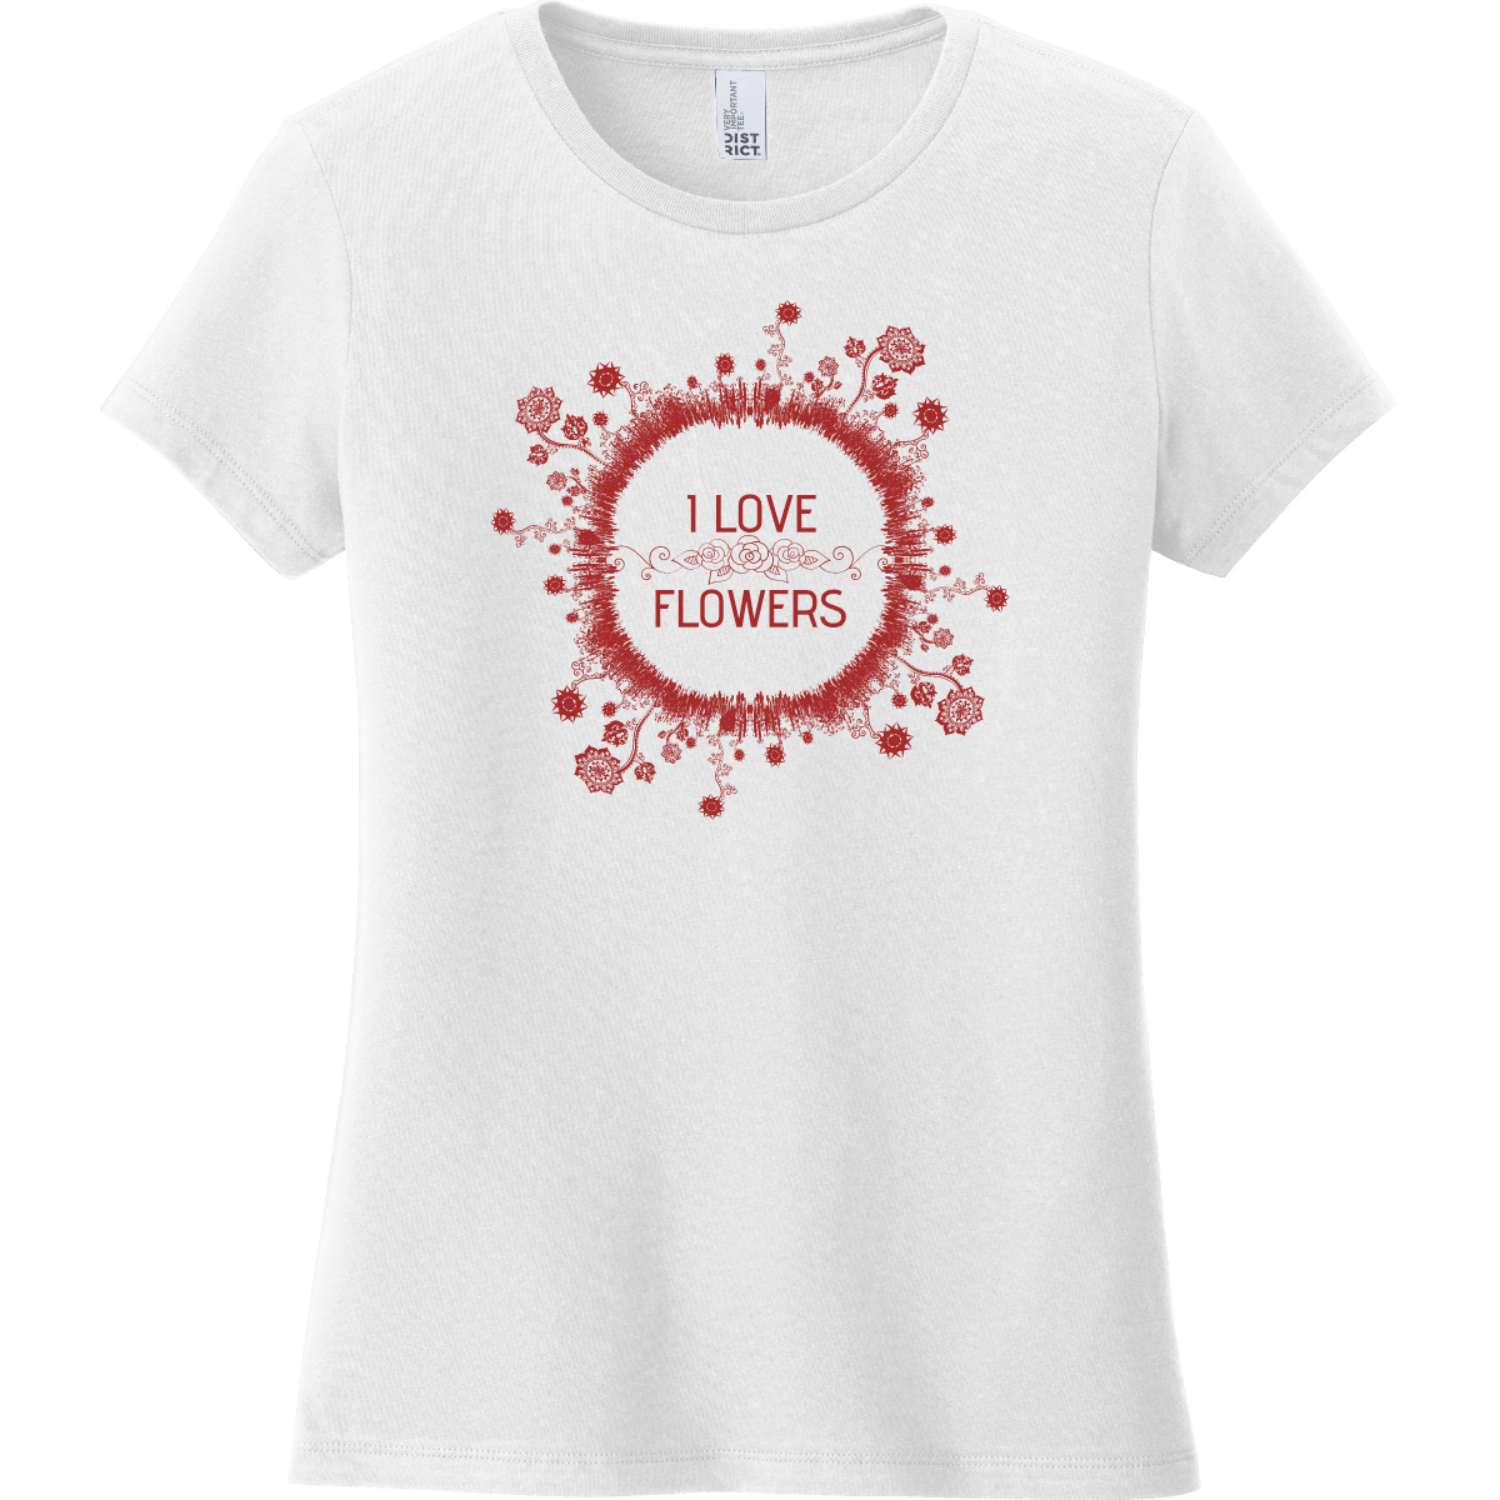 I Love Flowers T-Shirt For Women White District Women's Very Important Tee DT6002